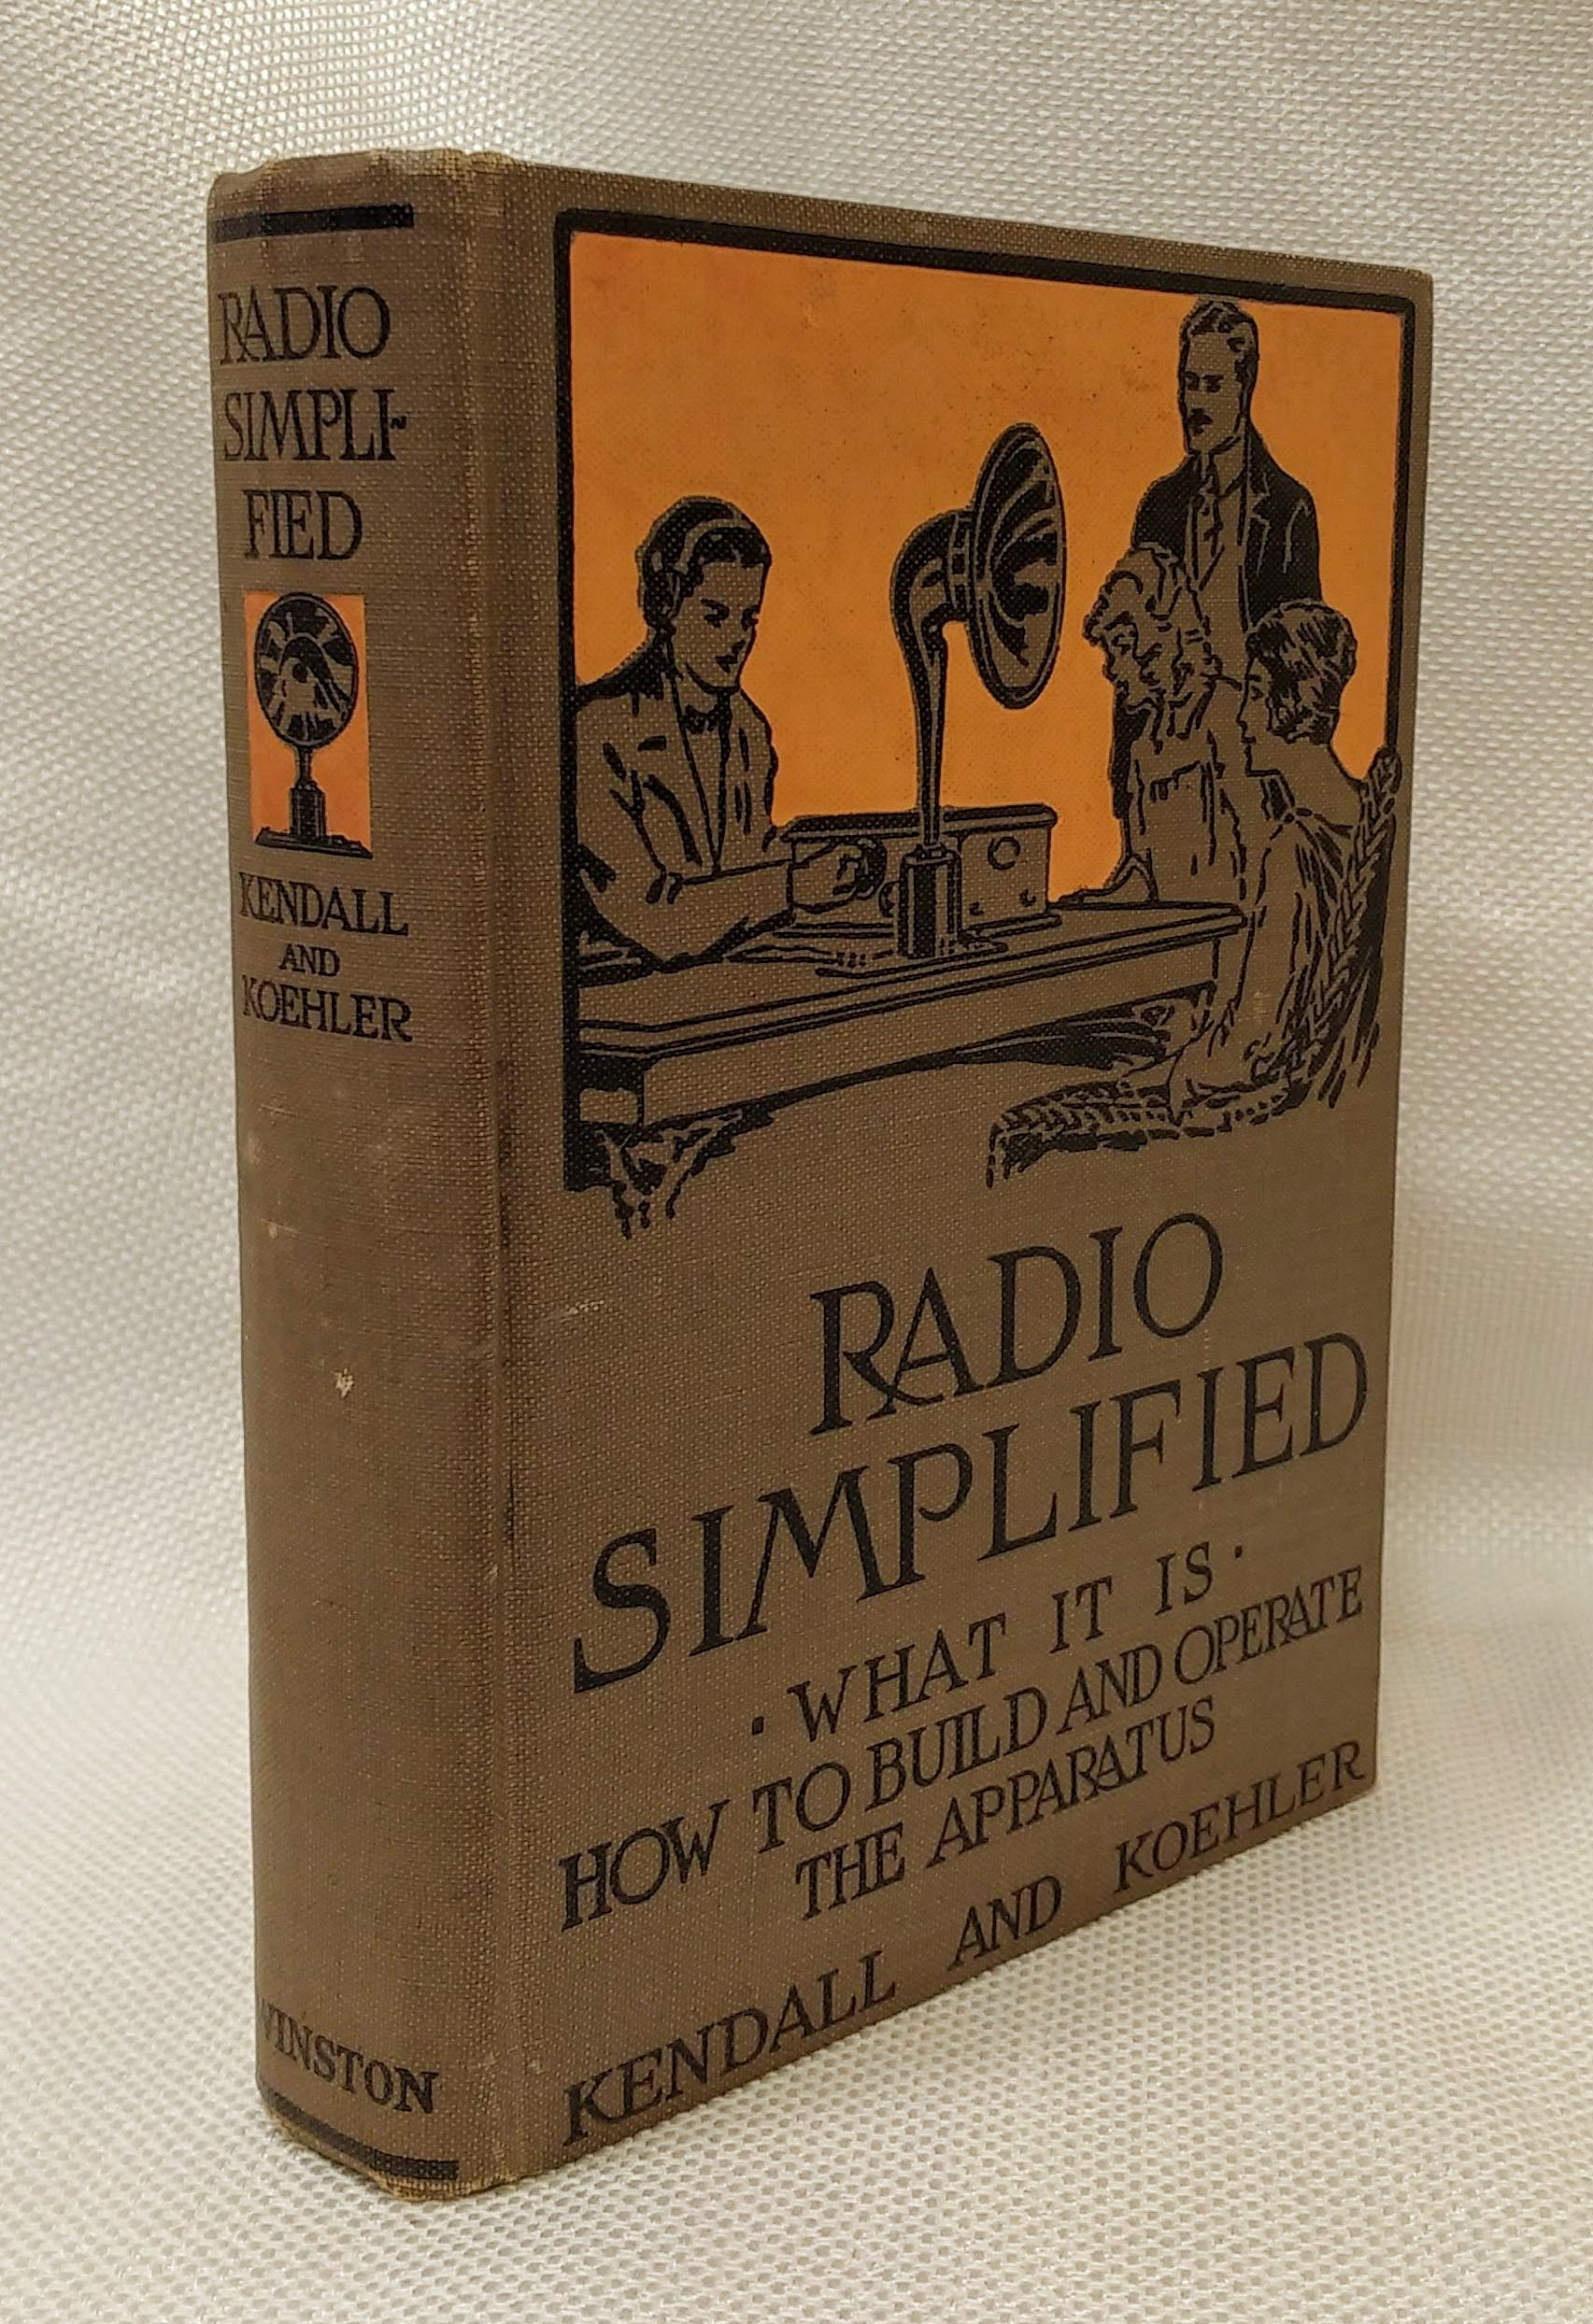 Radio Simplified: What It Is -- How to Build and Operate the Apparatus, Lewis F. Kendall, JR. & Robert Philip Koehler